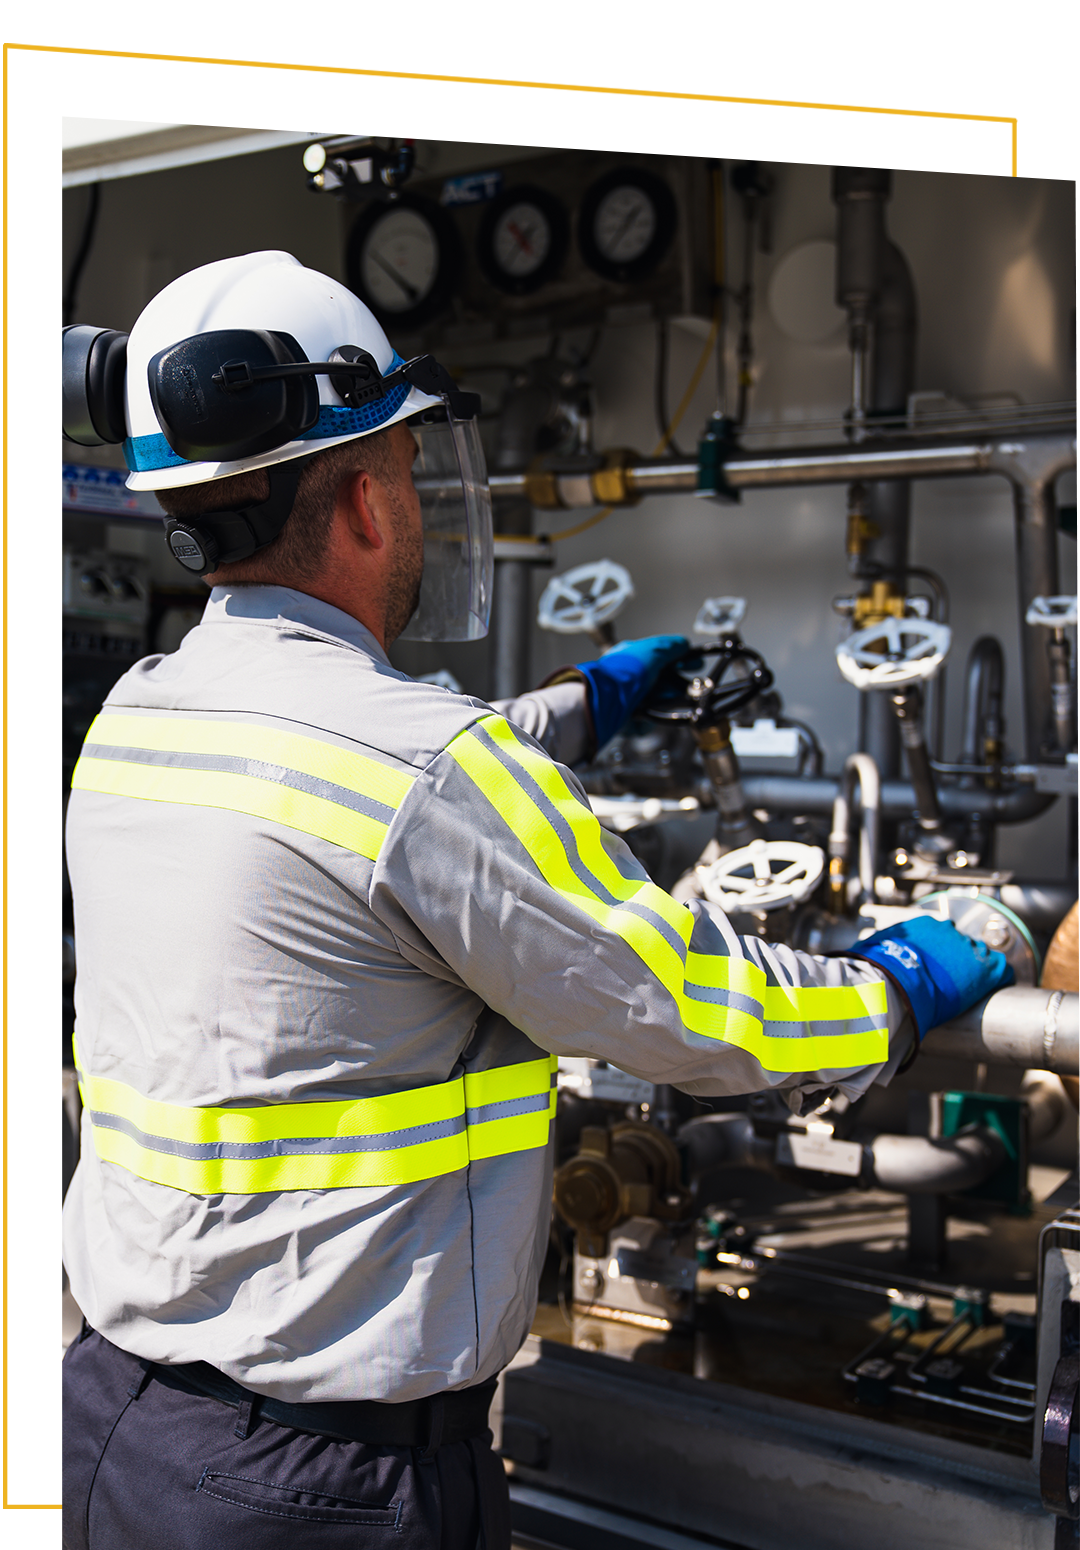 safety is key when it comes to industrial gas transportation